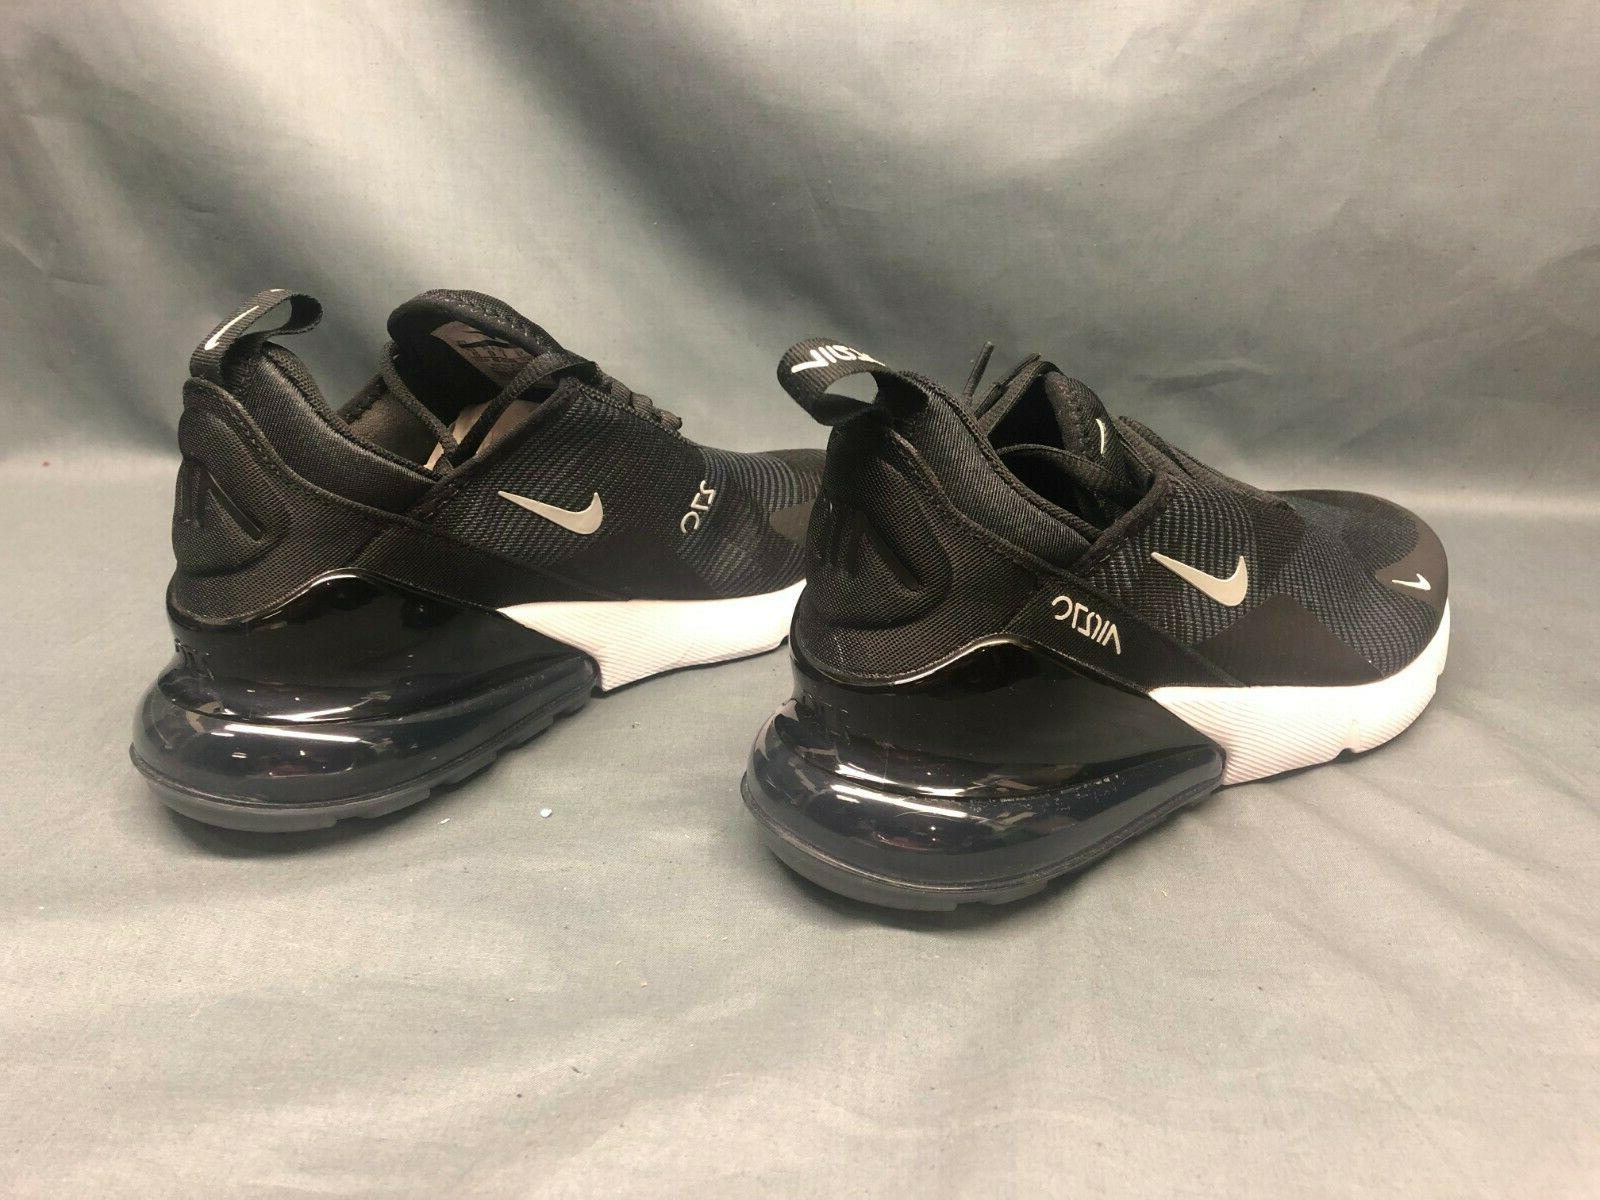 Nike Athletic Sneakers Black White Grey Size 6.5 NEW!